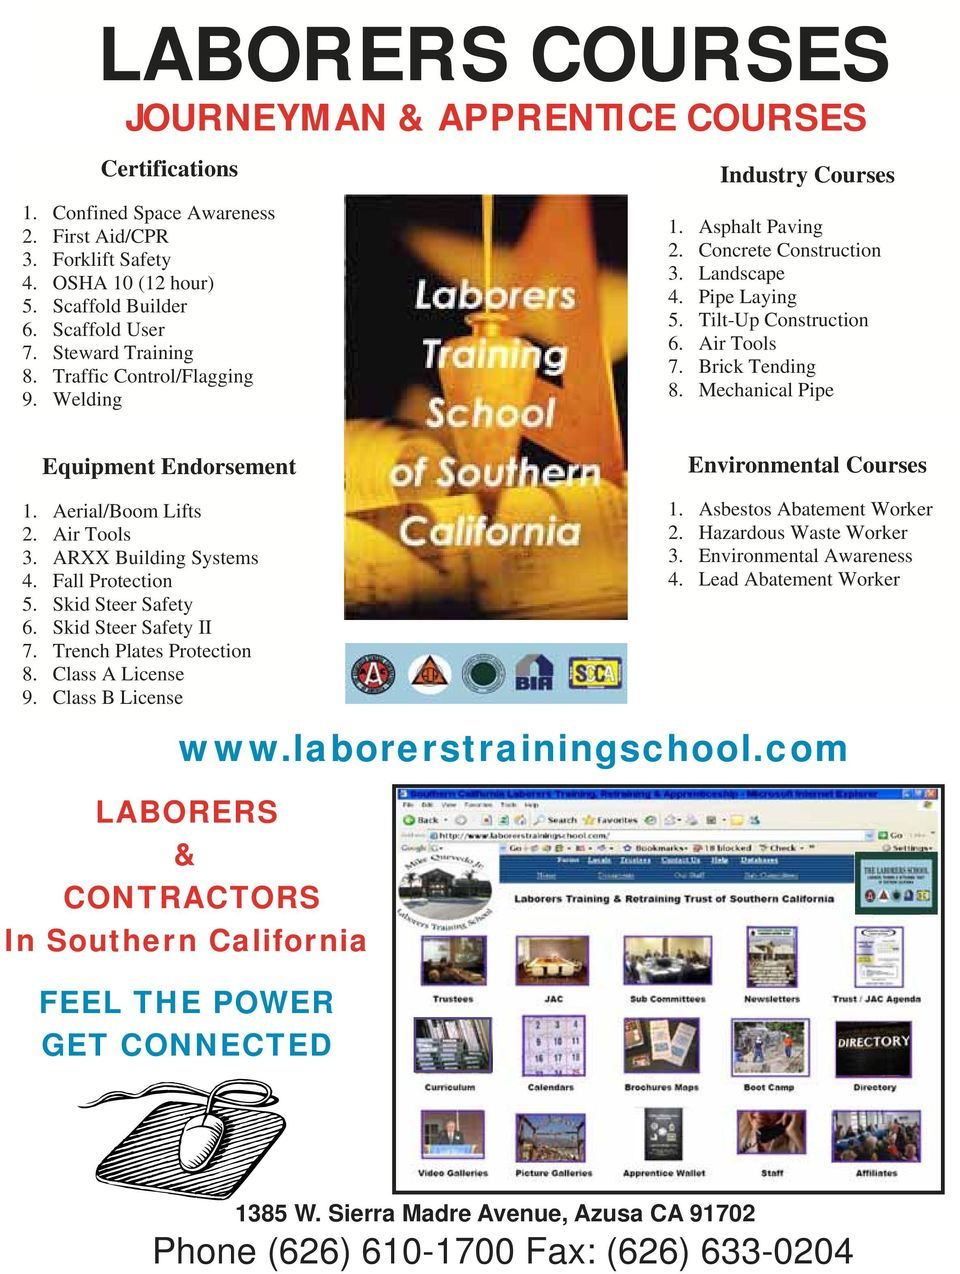 SOUTHERN CALIFORNIA LABORERS TRAINING NEWS LABORERS OCTOBER